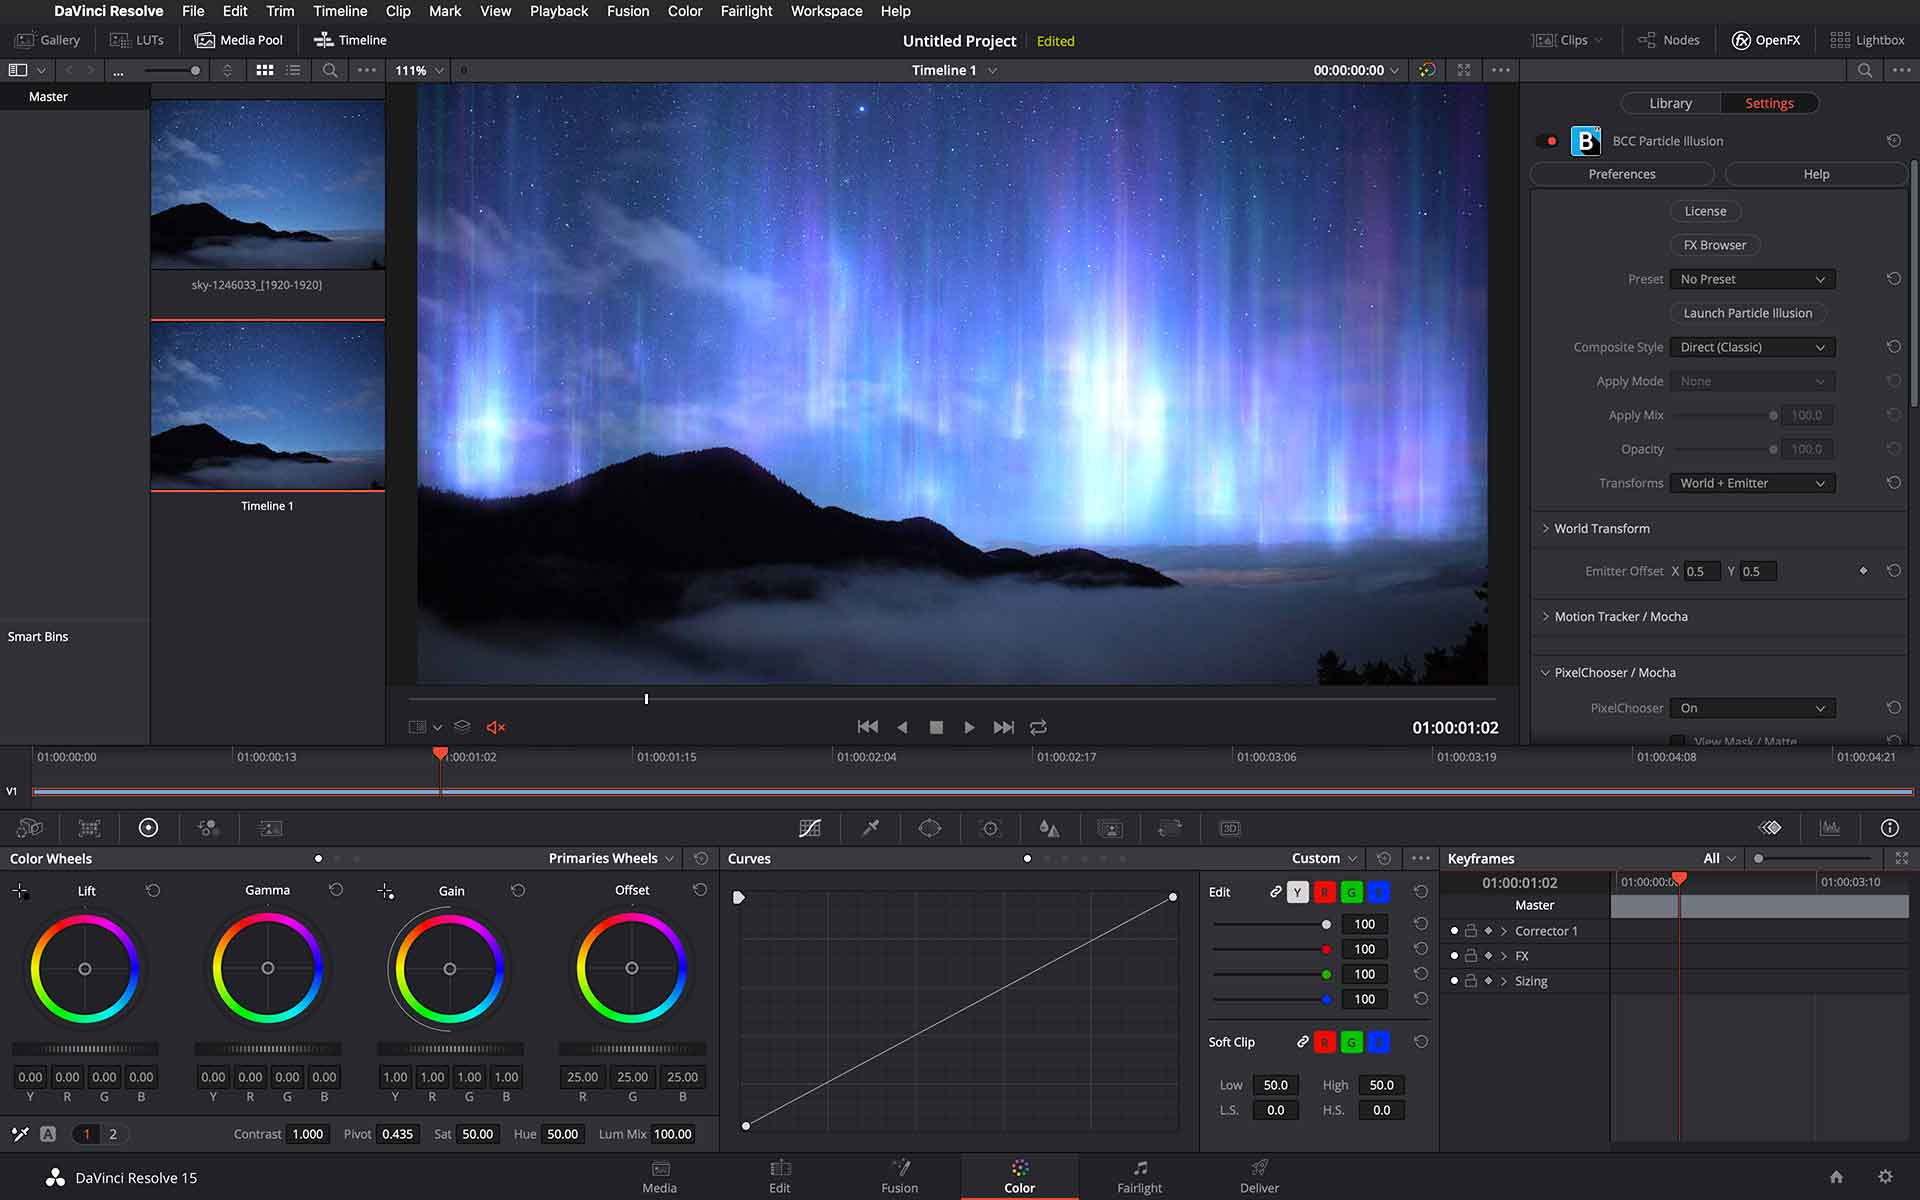 Image of Particle Illusion inside DaVinci Resolve interface